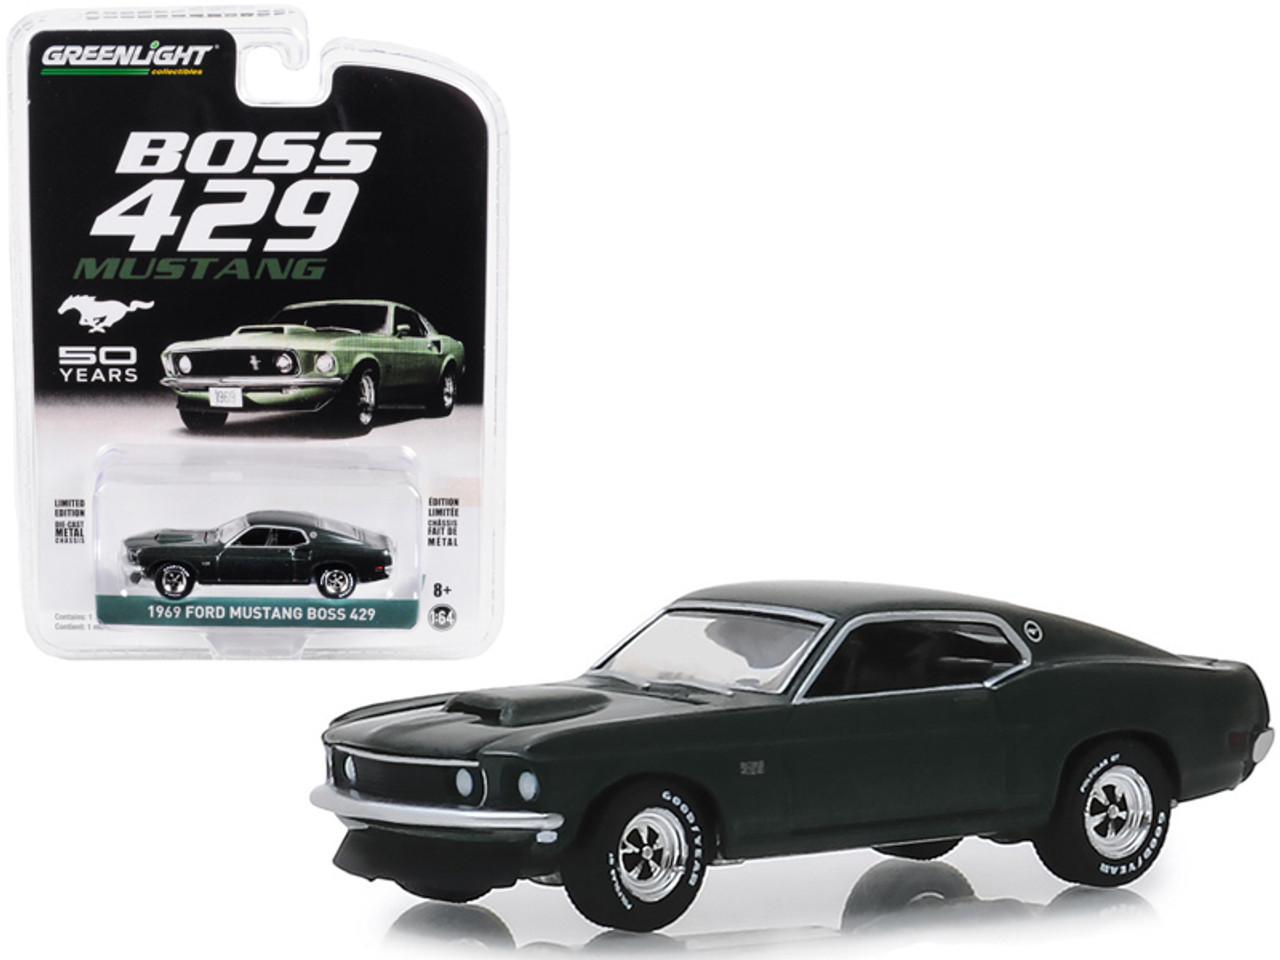 The car received a special gray paint color, a unique grille, fairlane door handles for the black interior, and finned cobra valve covers. Cars Trucks Vans Diecast Toy Vehicles Hobby Exclusive 1969 Ford Mustang Fastback 1 64 Greenlight